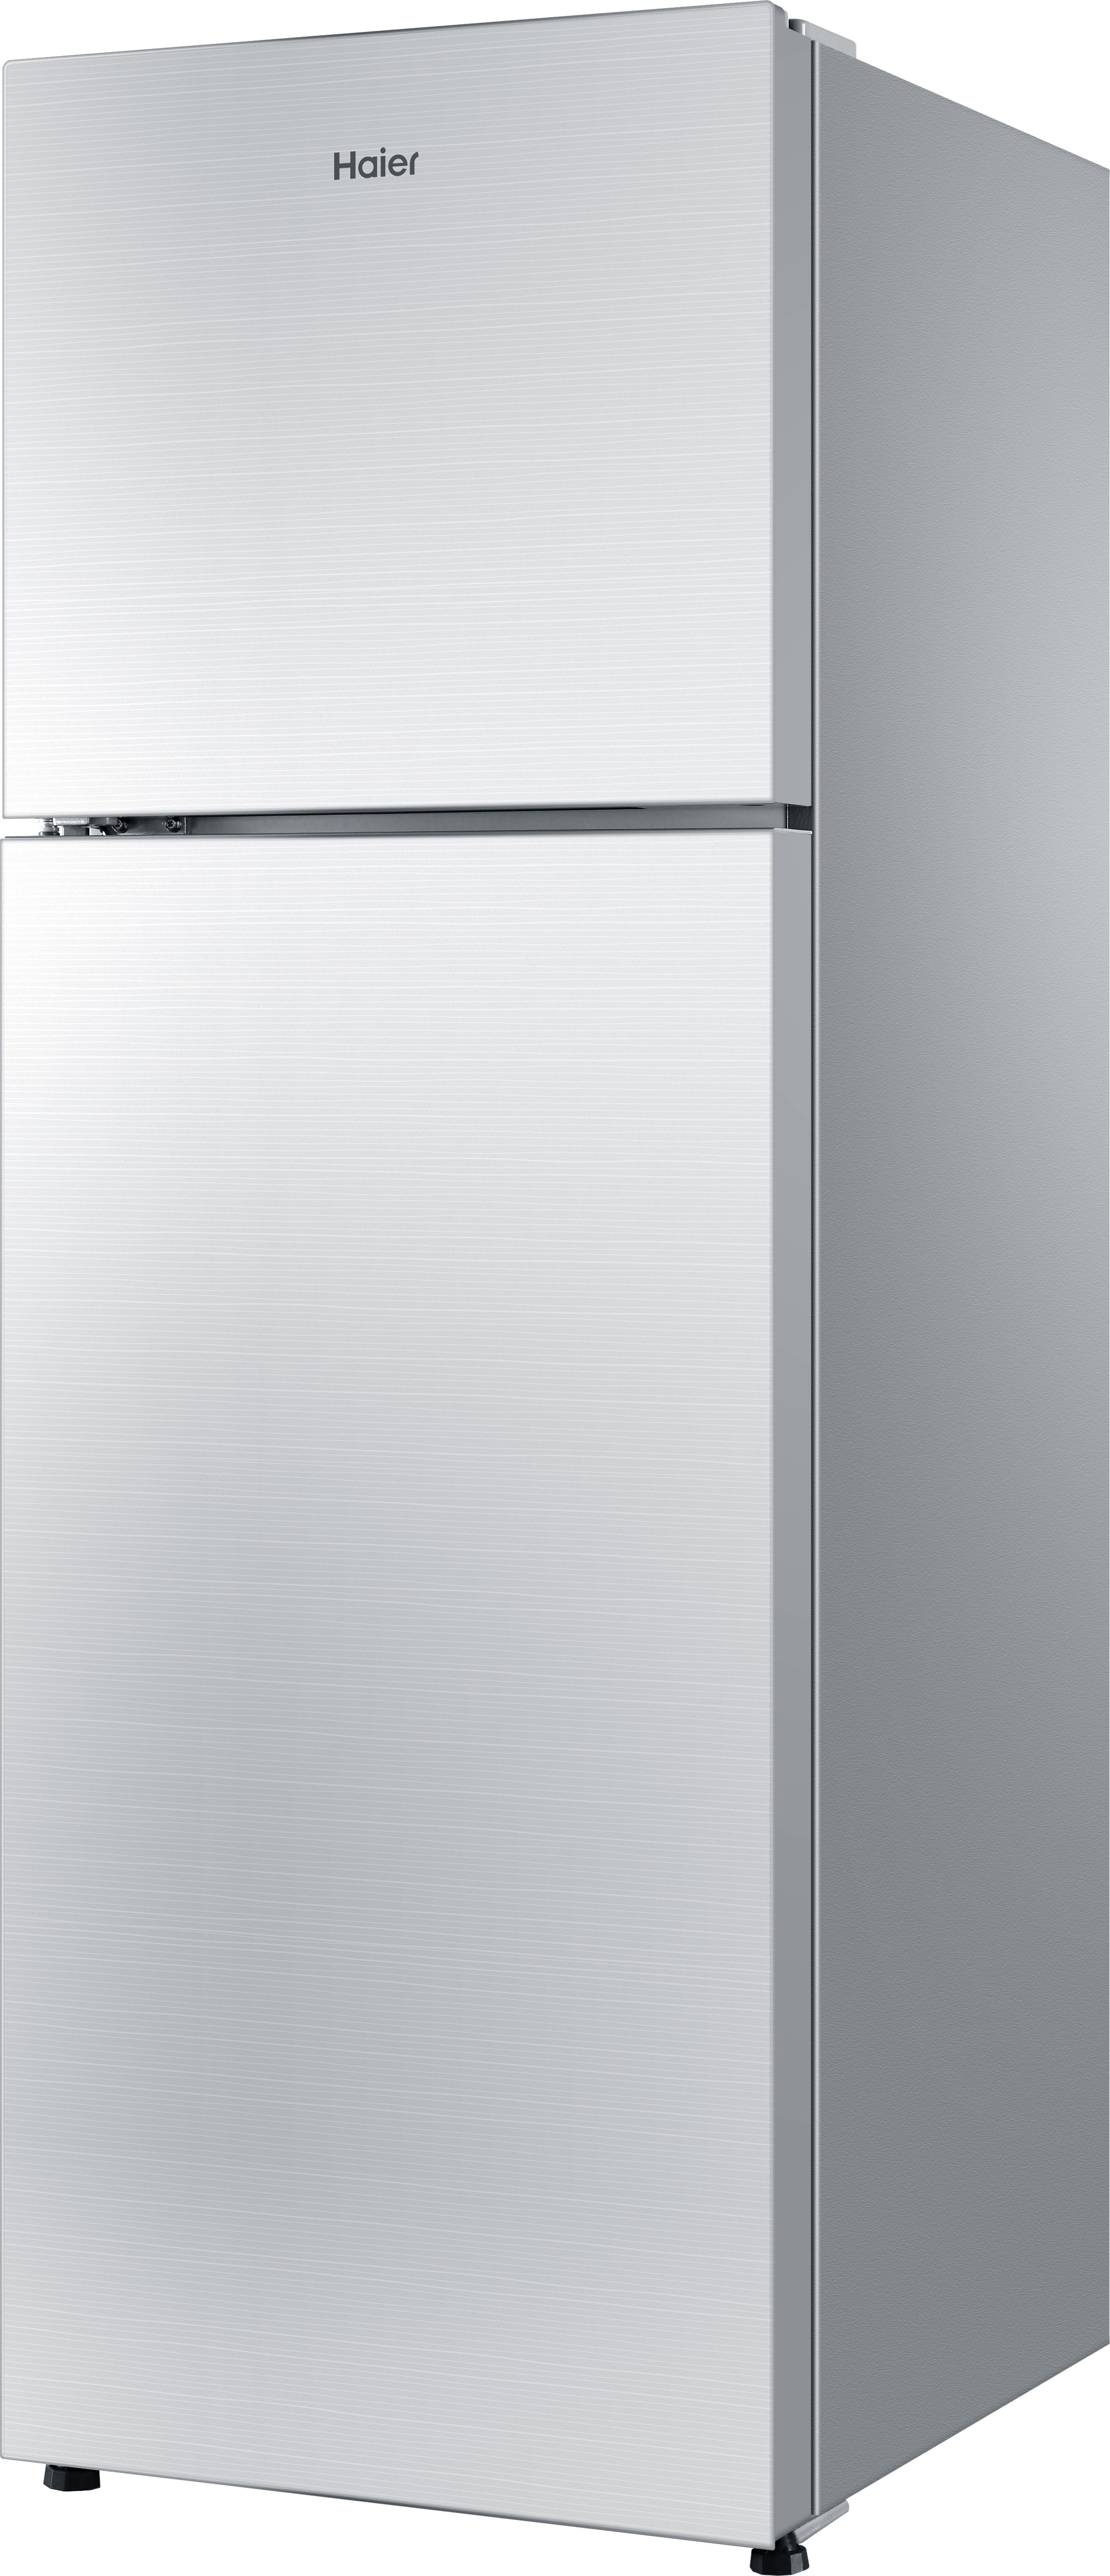 View Haier 270 L Frost Free Double Door Refrigerator  Price Online